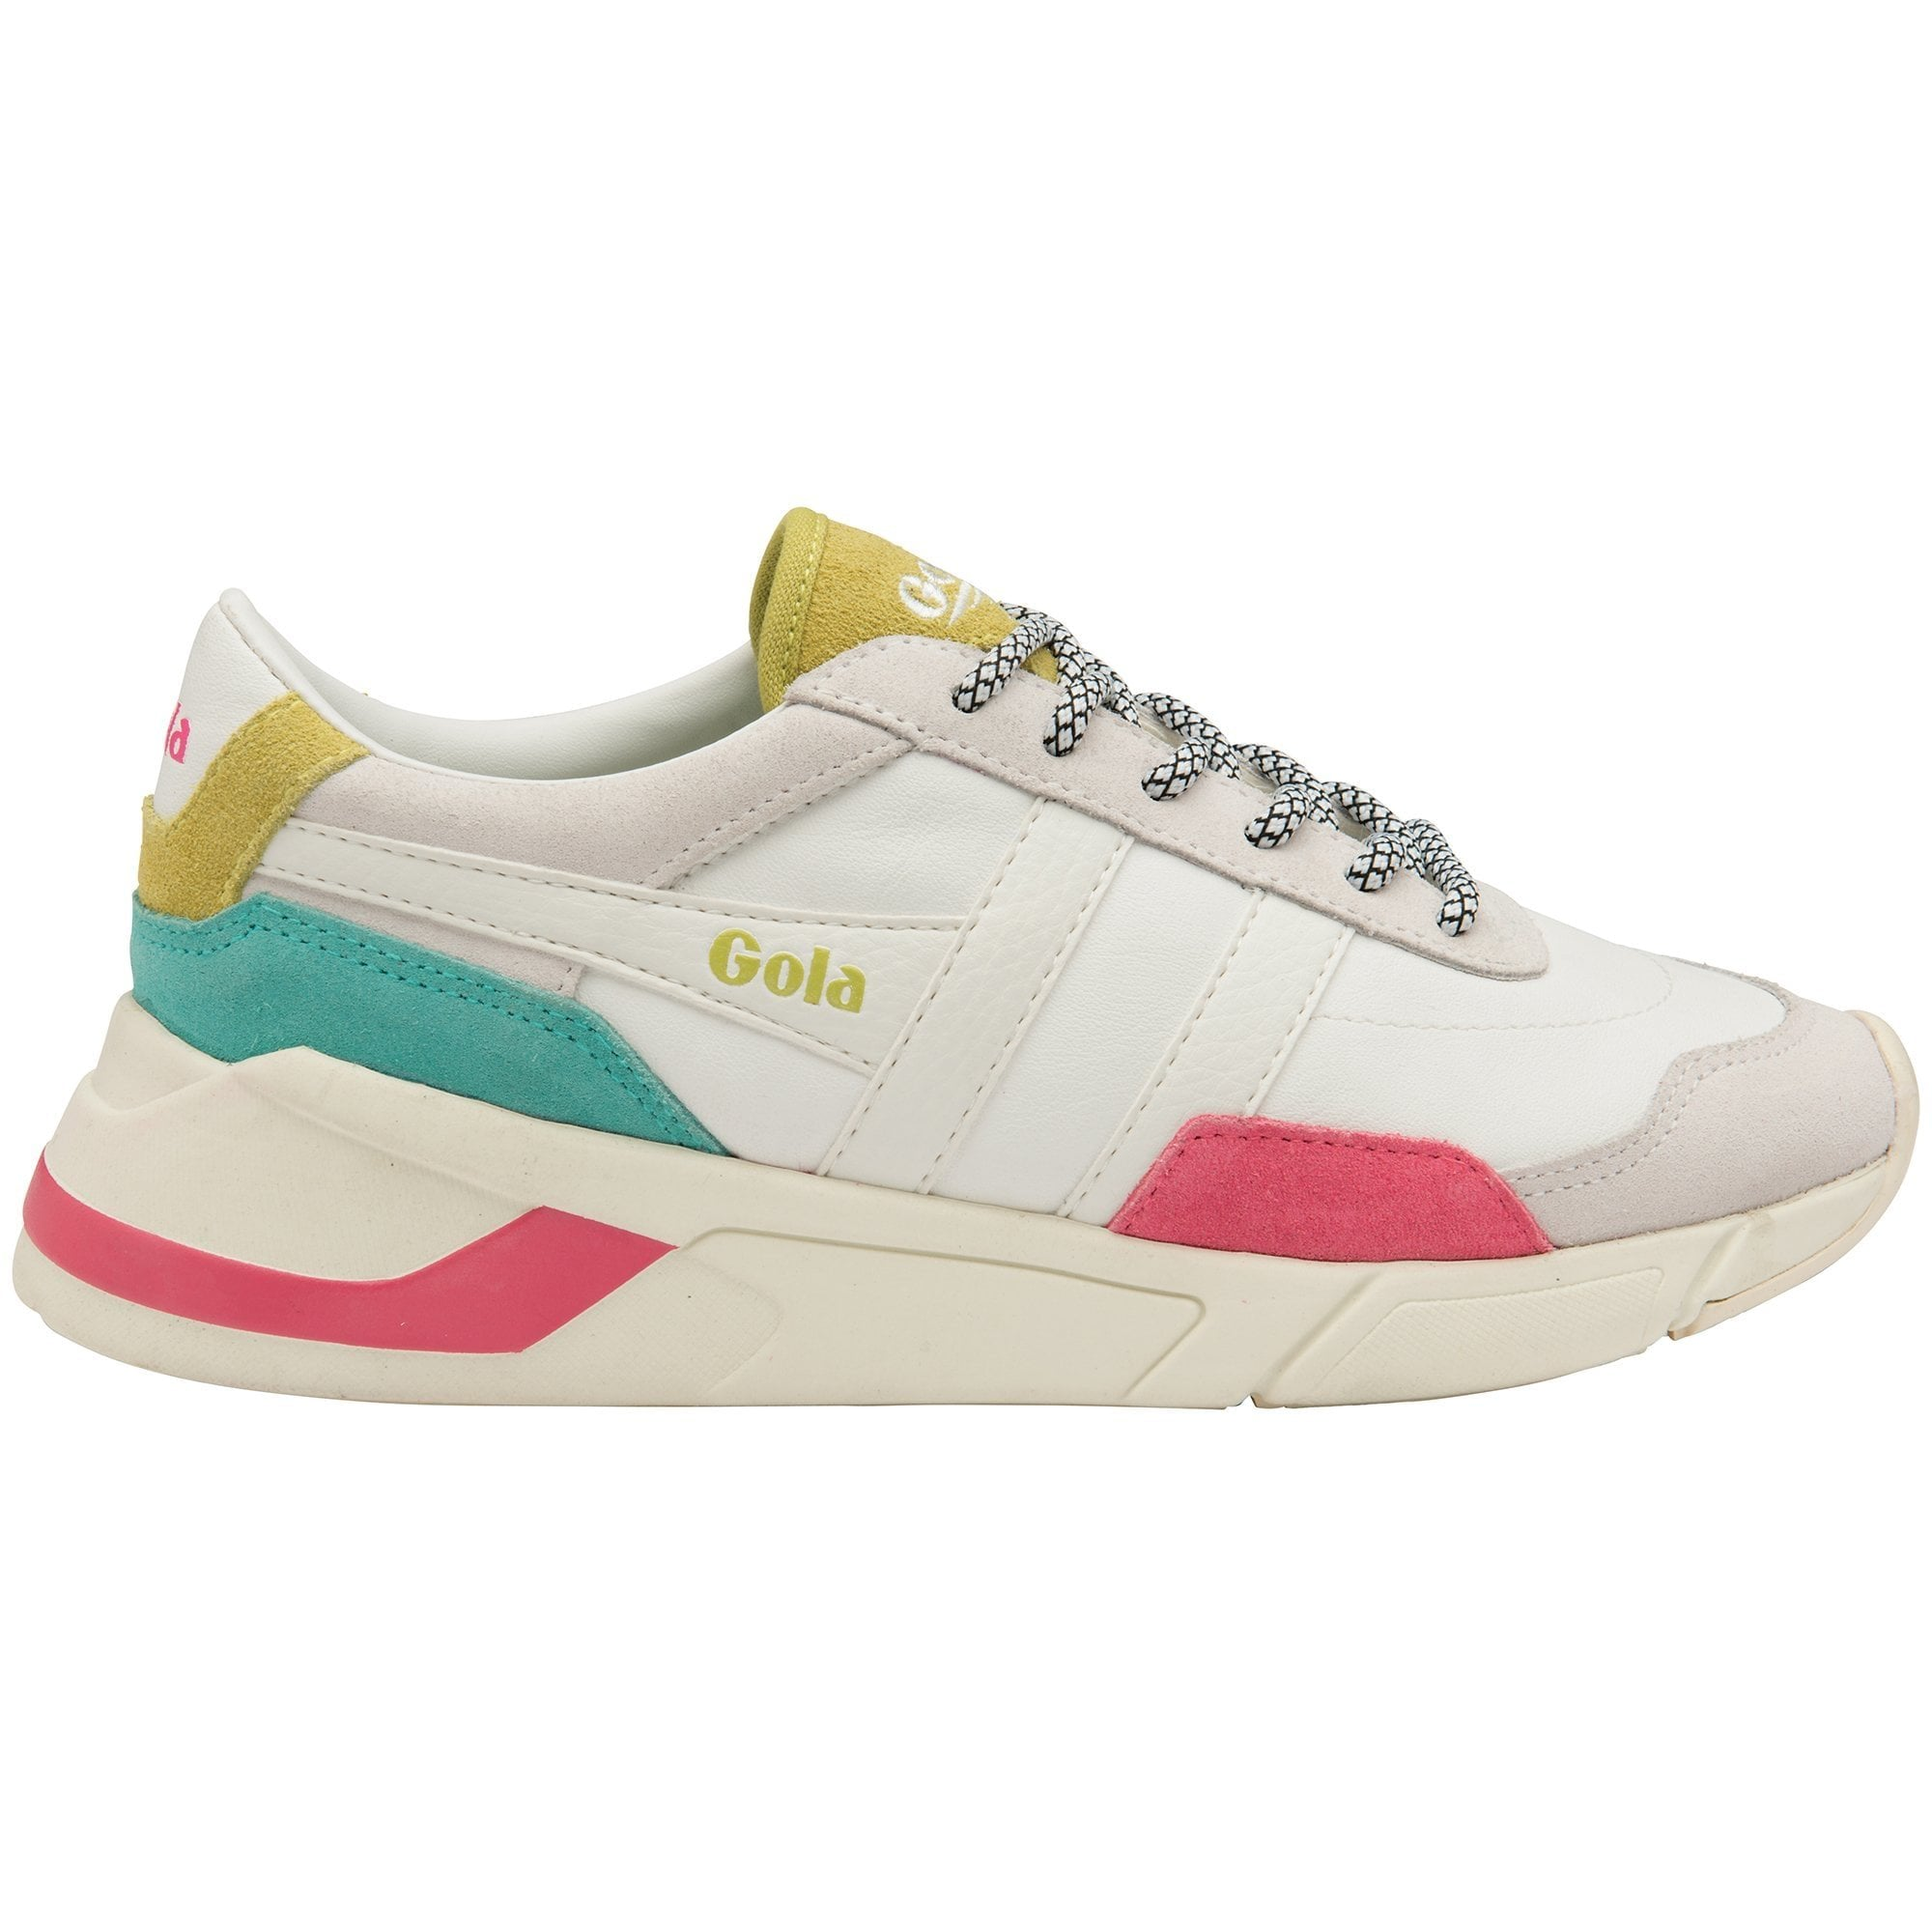 Women's Eclipse Trident Sneakers